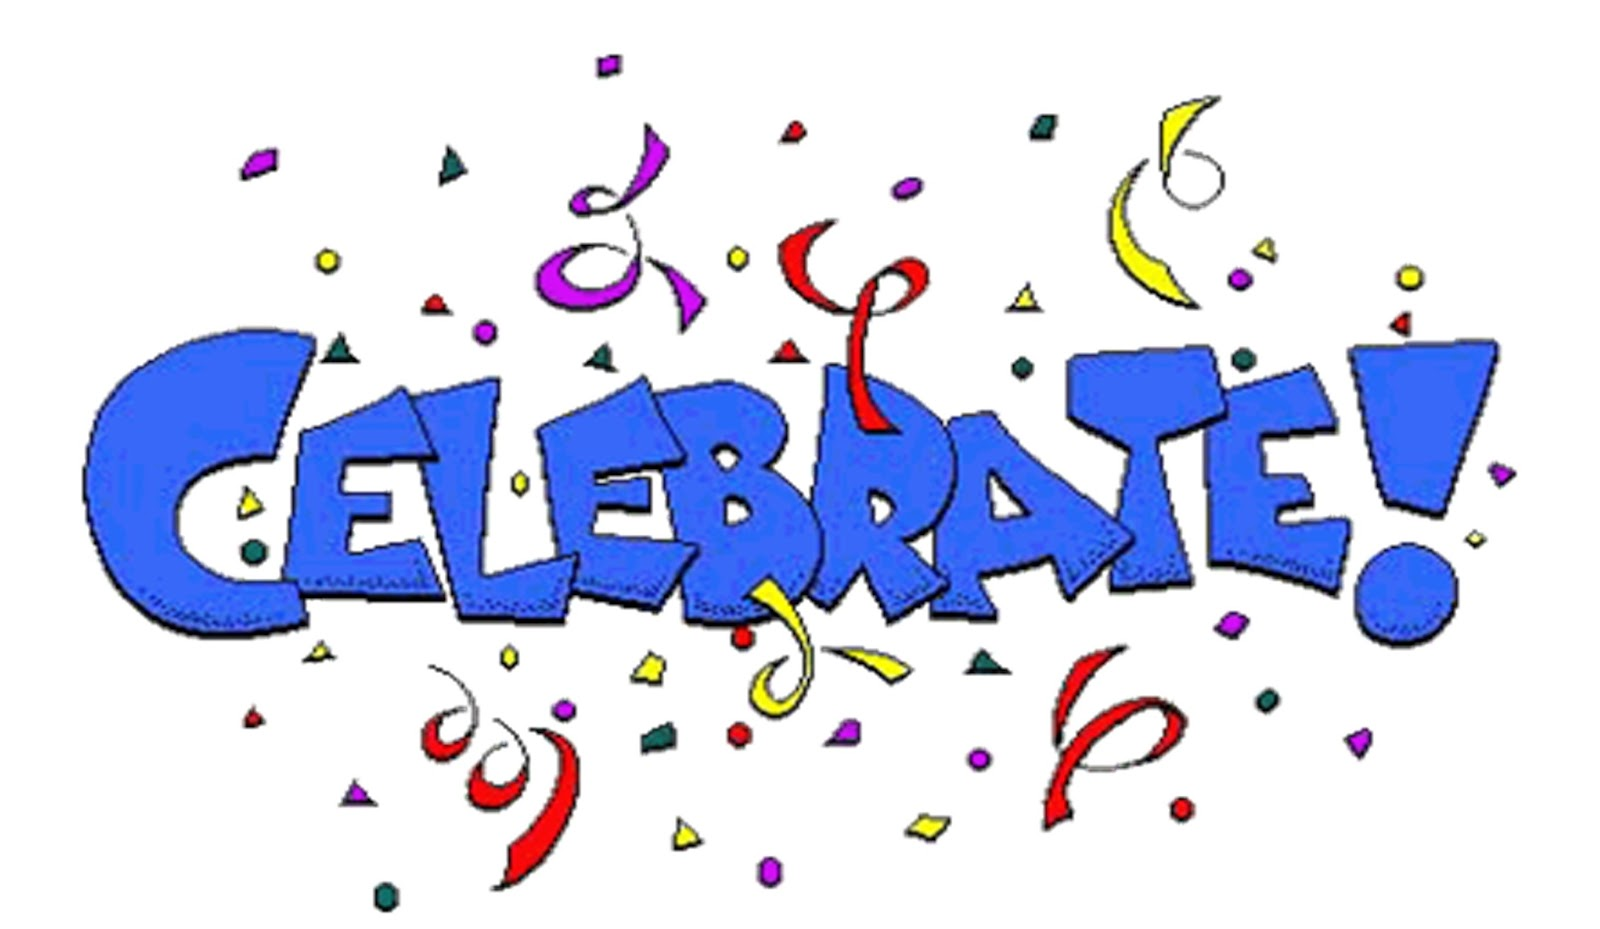 Celebration clipart burst Free clipartix party celebration clipart